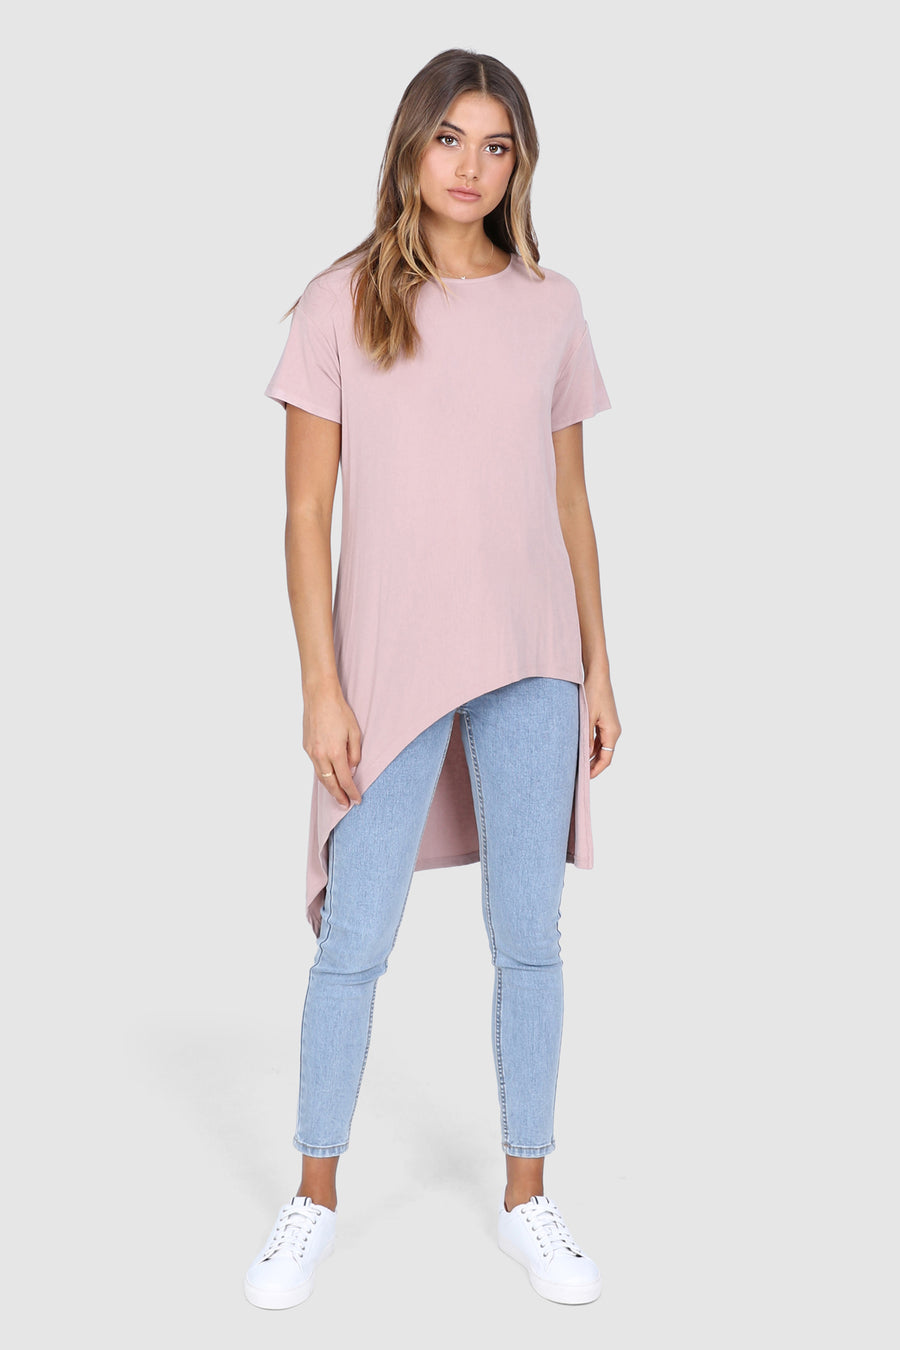 Eryn Top | Dusty Pink